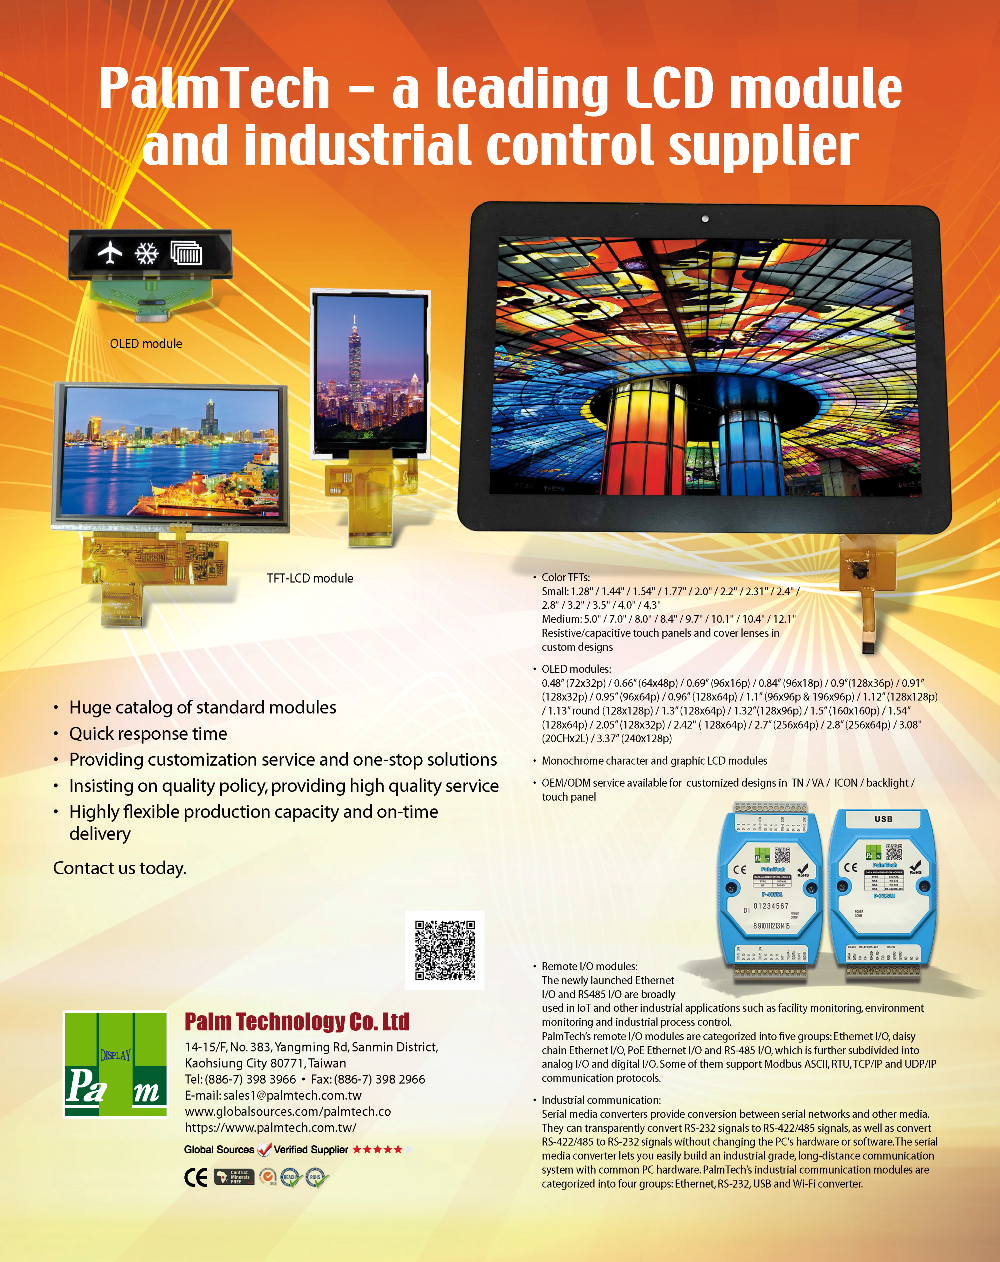 Electronic Components Feb 2019 E-magazines